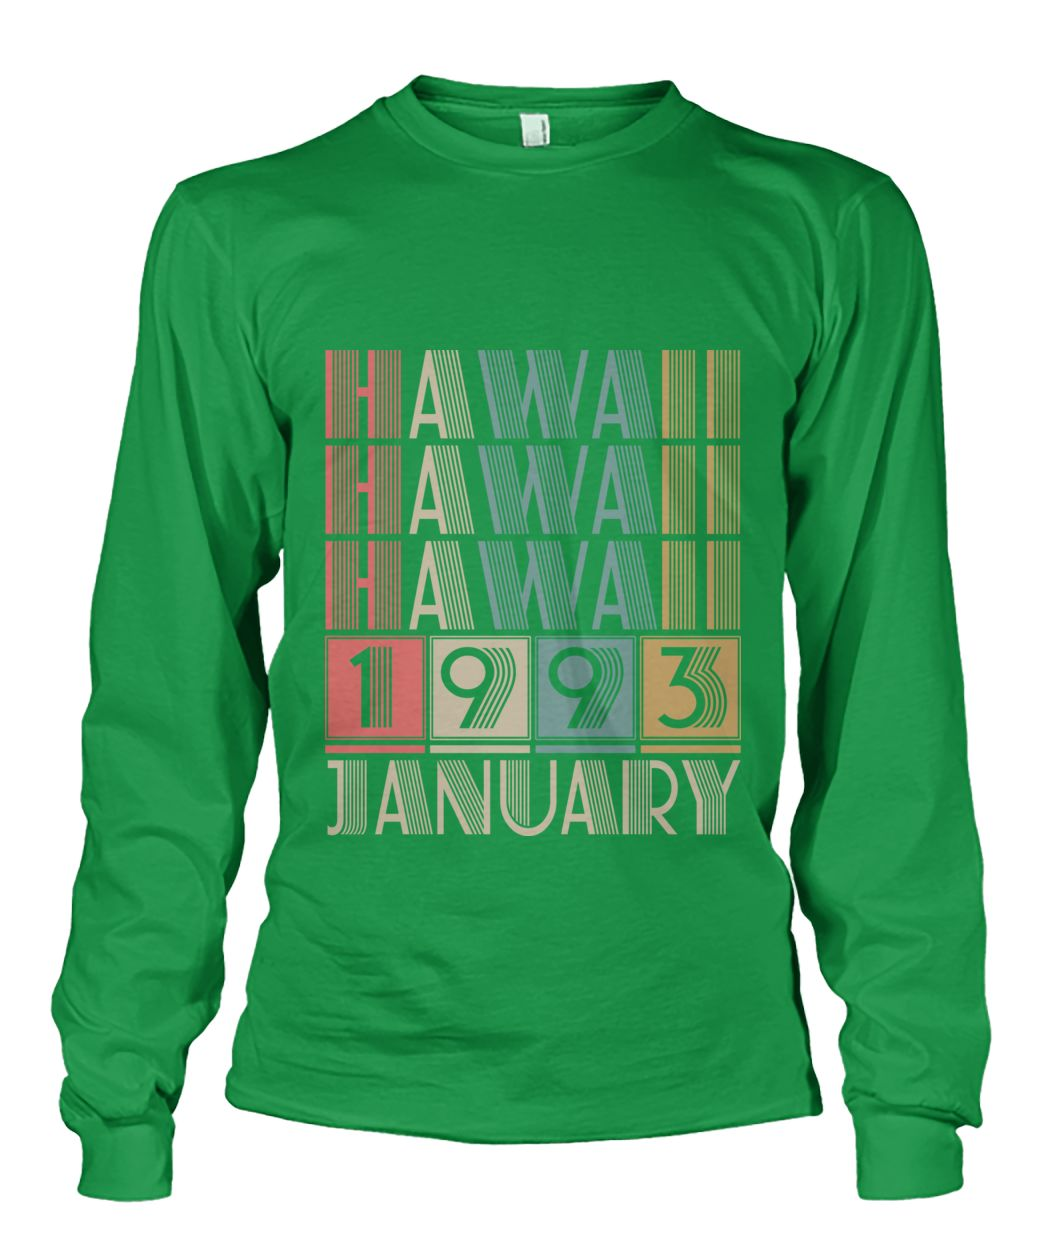 Born in Hawaii in January 1993 t shirt-Short Sleeves - TEEHOT.COM